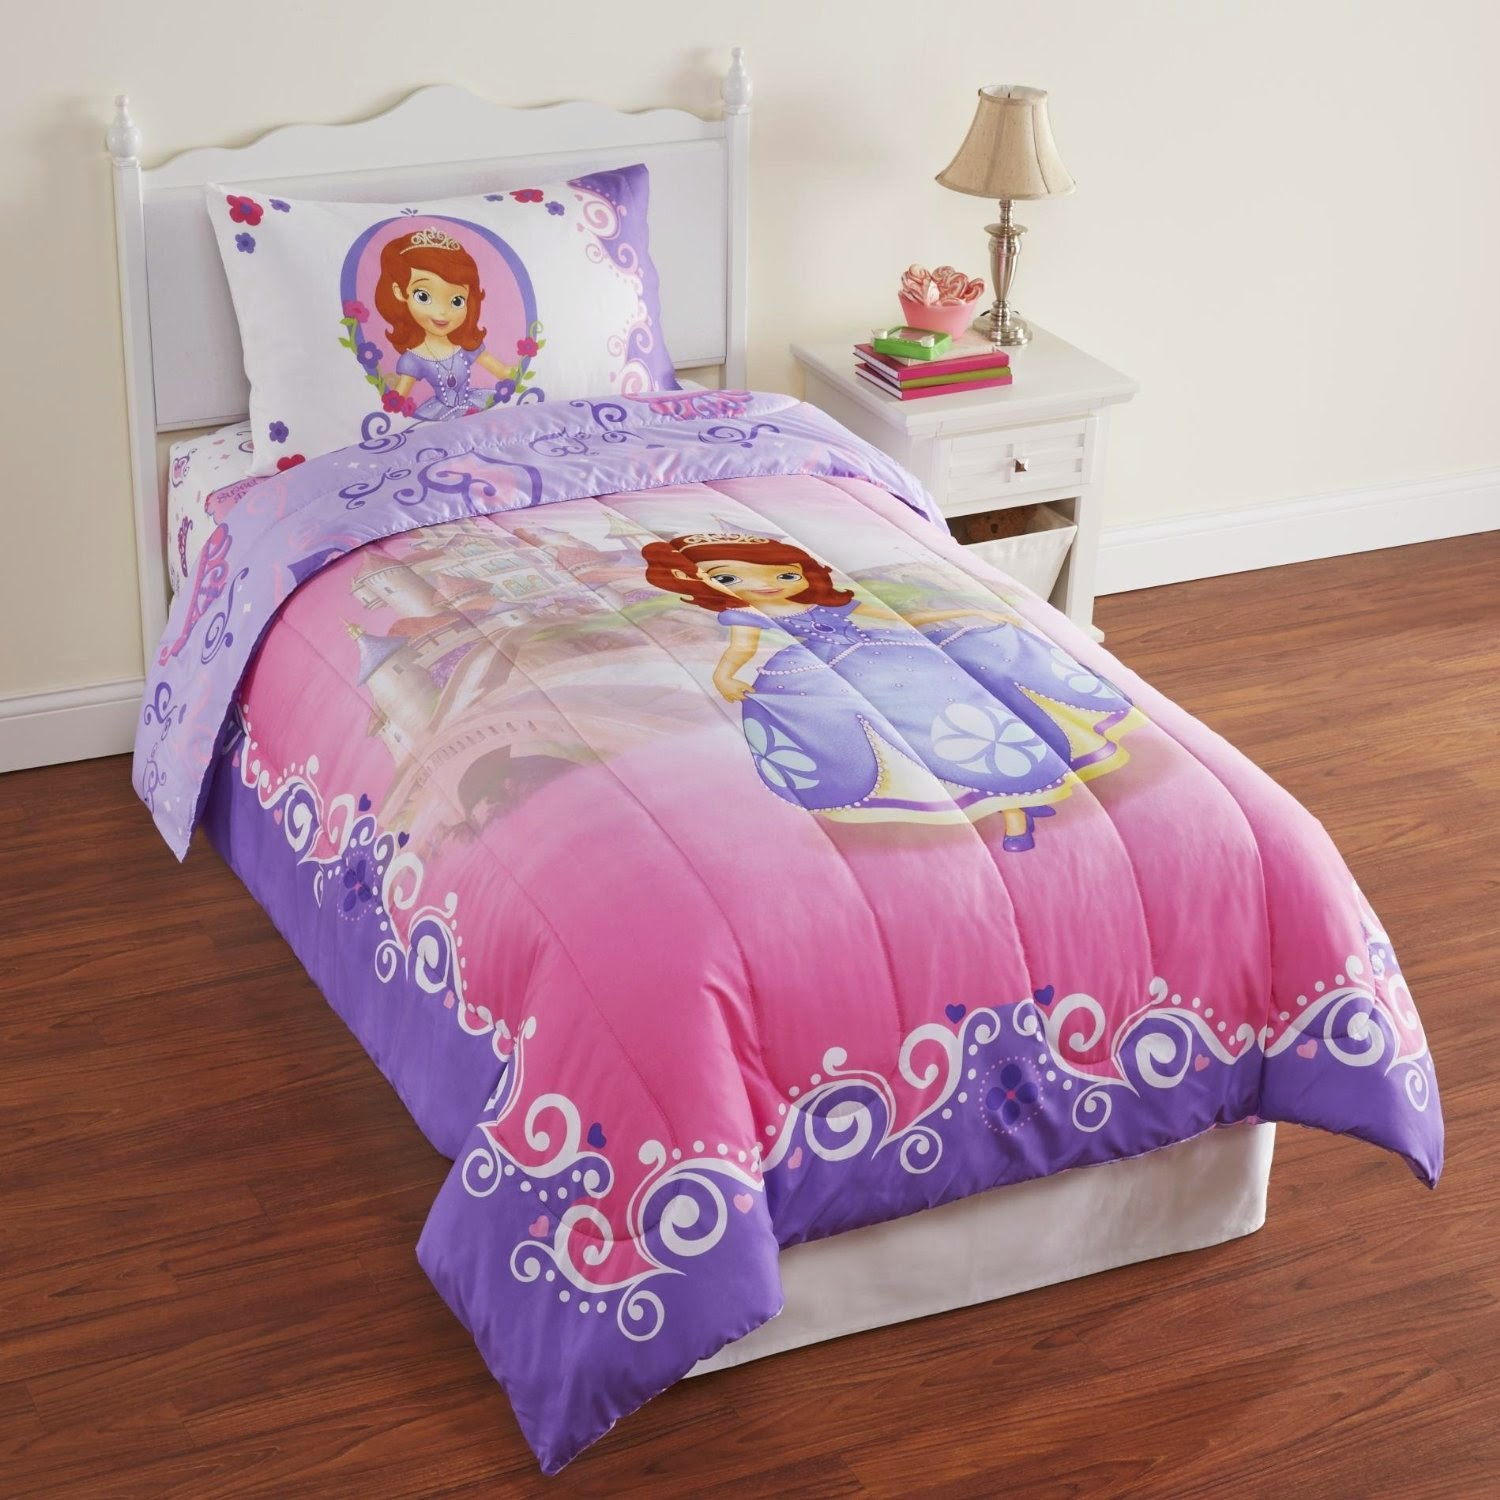 Charming Bedroom Decor Ideas And Designs Top Eight Princess Sofia